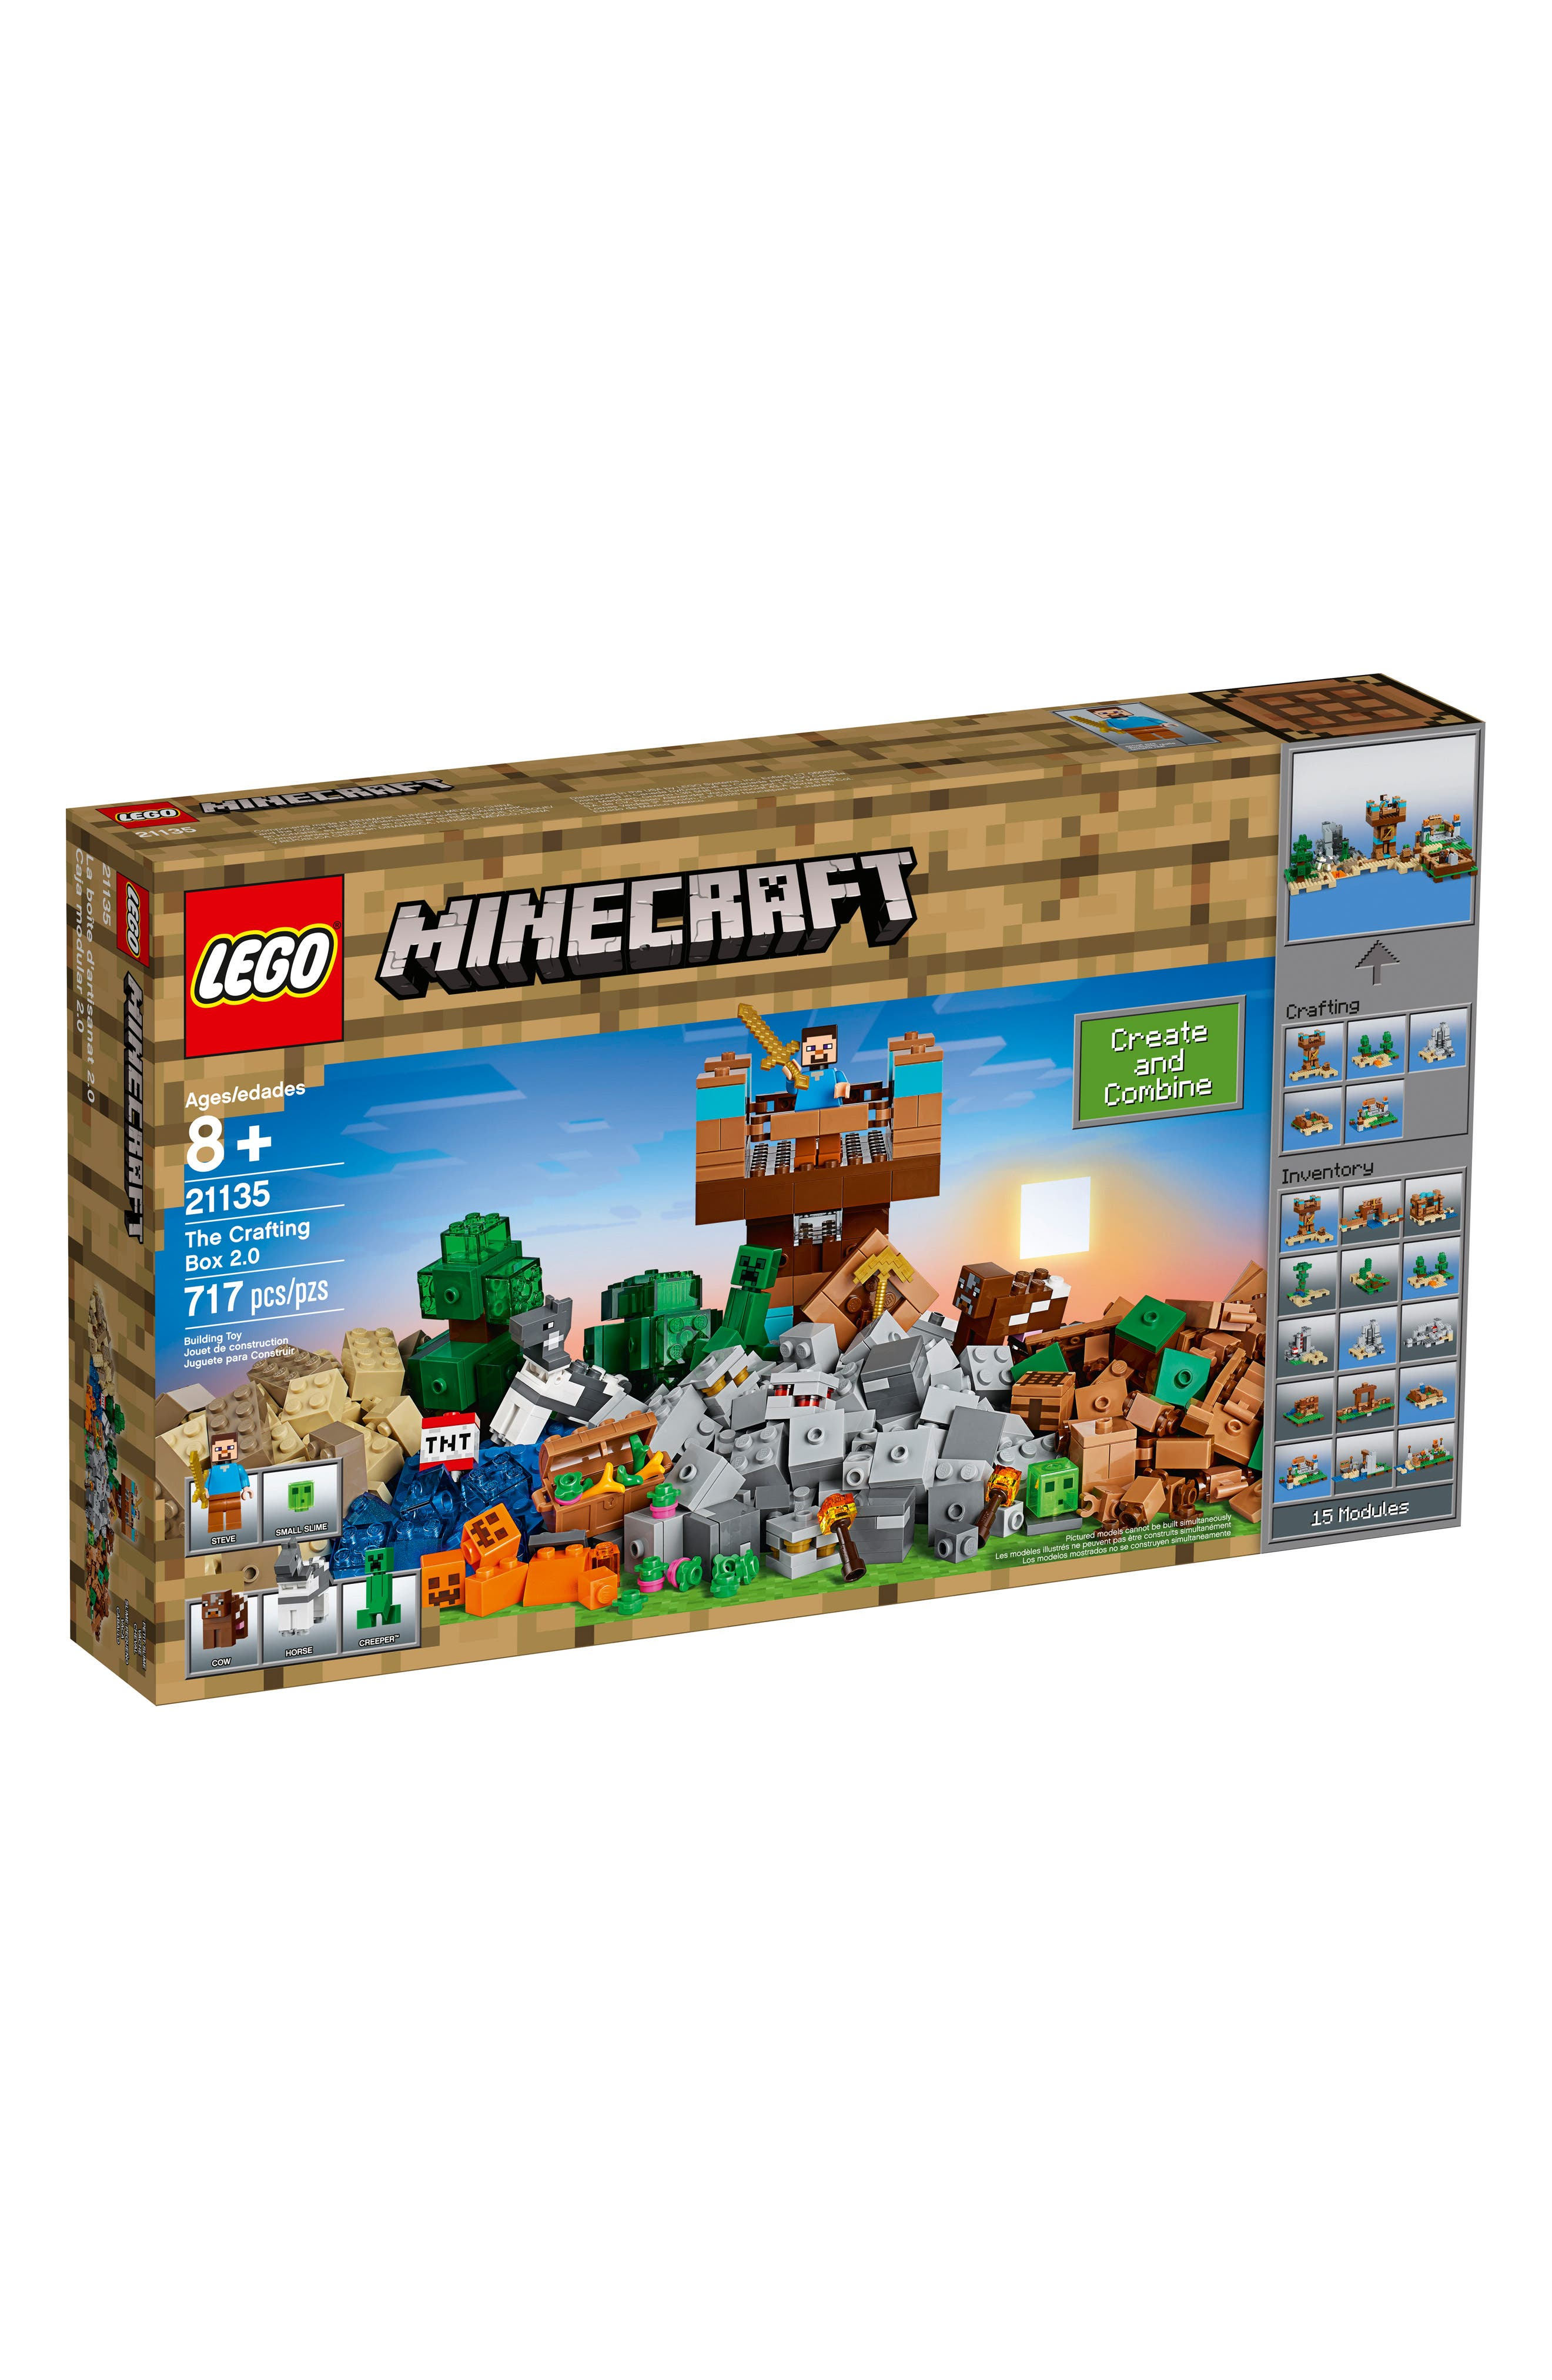 Minecraft<sup>™</sup> The Crafting Box 2.0 Play Set - 21135,                         Main,                         color, Multi